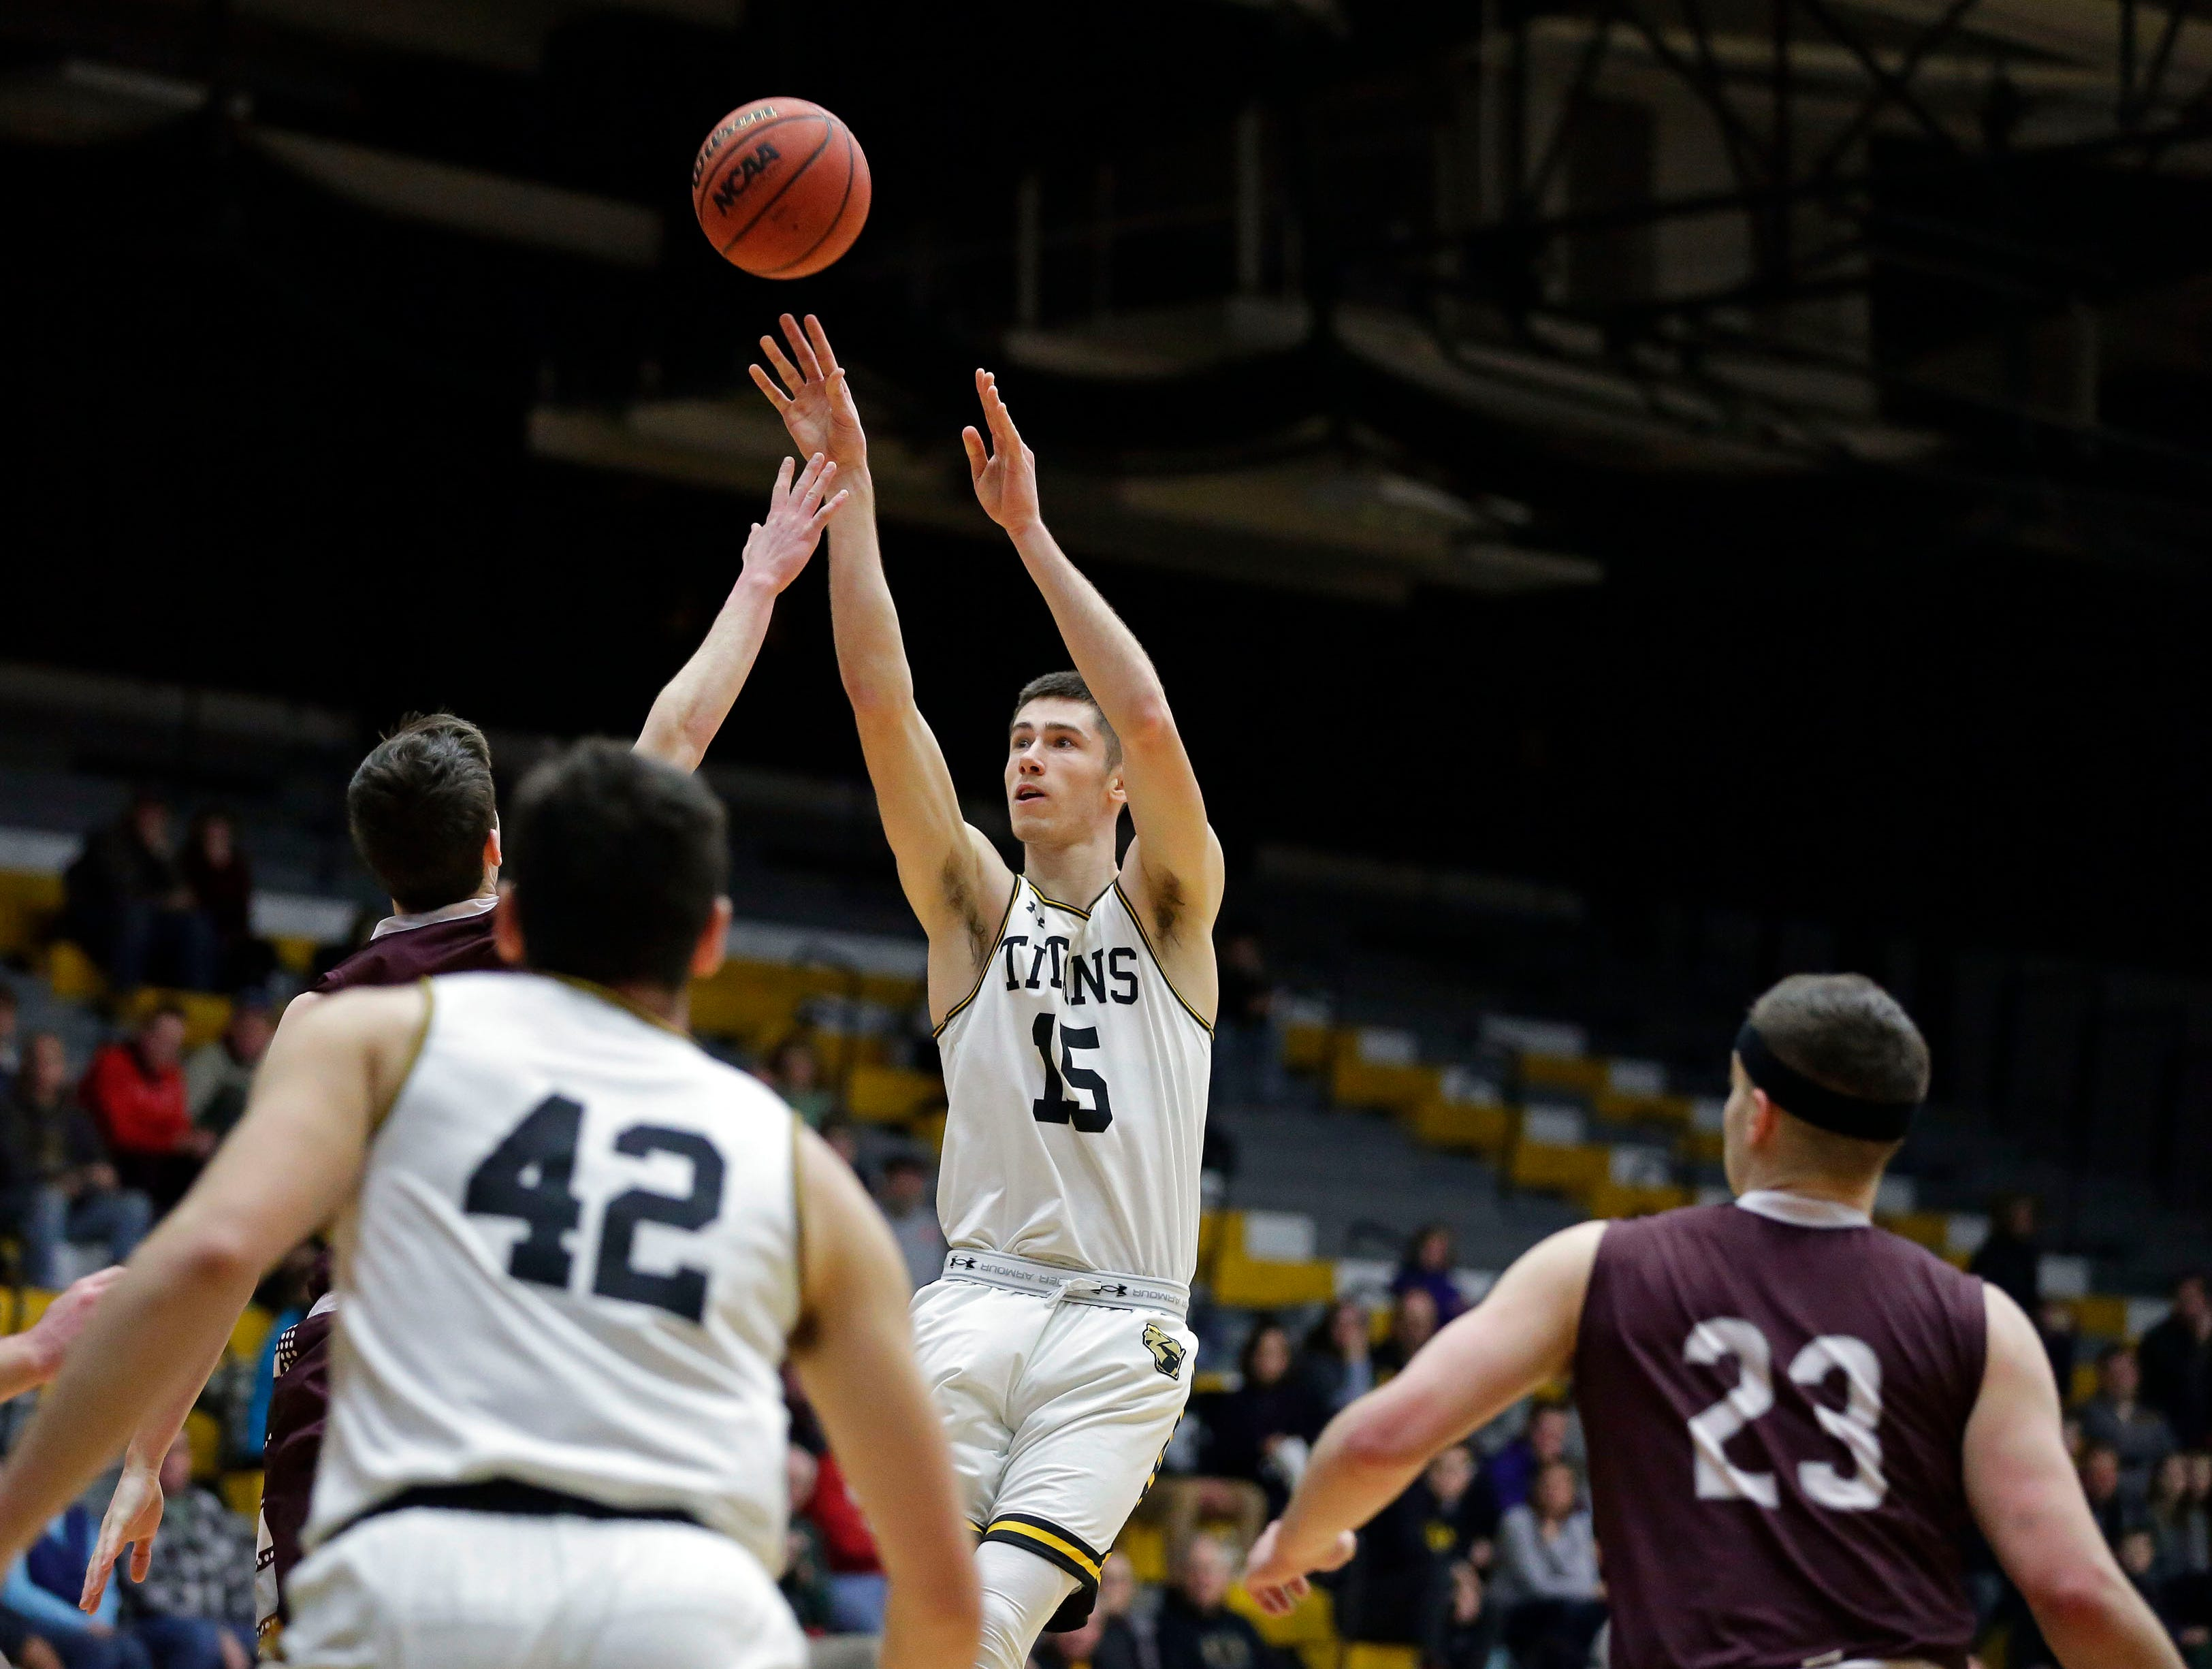 Adam Fravert of UW-Oshkosh shoots over the defense of UW-La Crosse in Wisconsin Intercollegiate Athletic Conference basketball Saturday, January 19, 2019, at Kolf Sports Center in Oshkosh, Wis. 